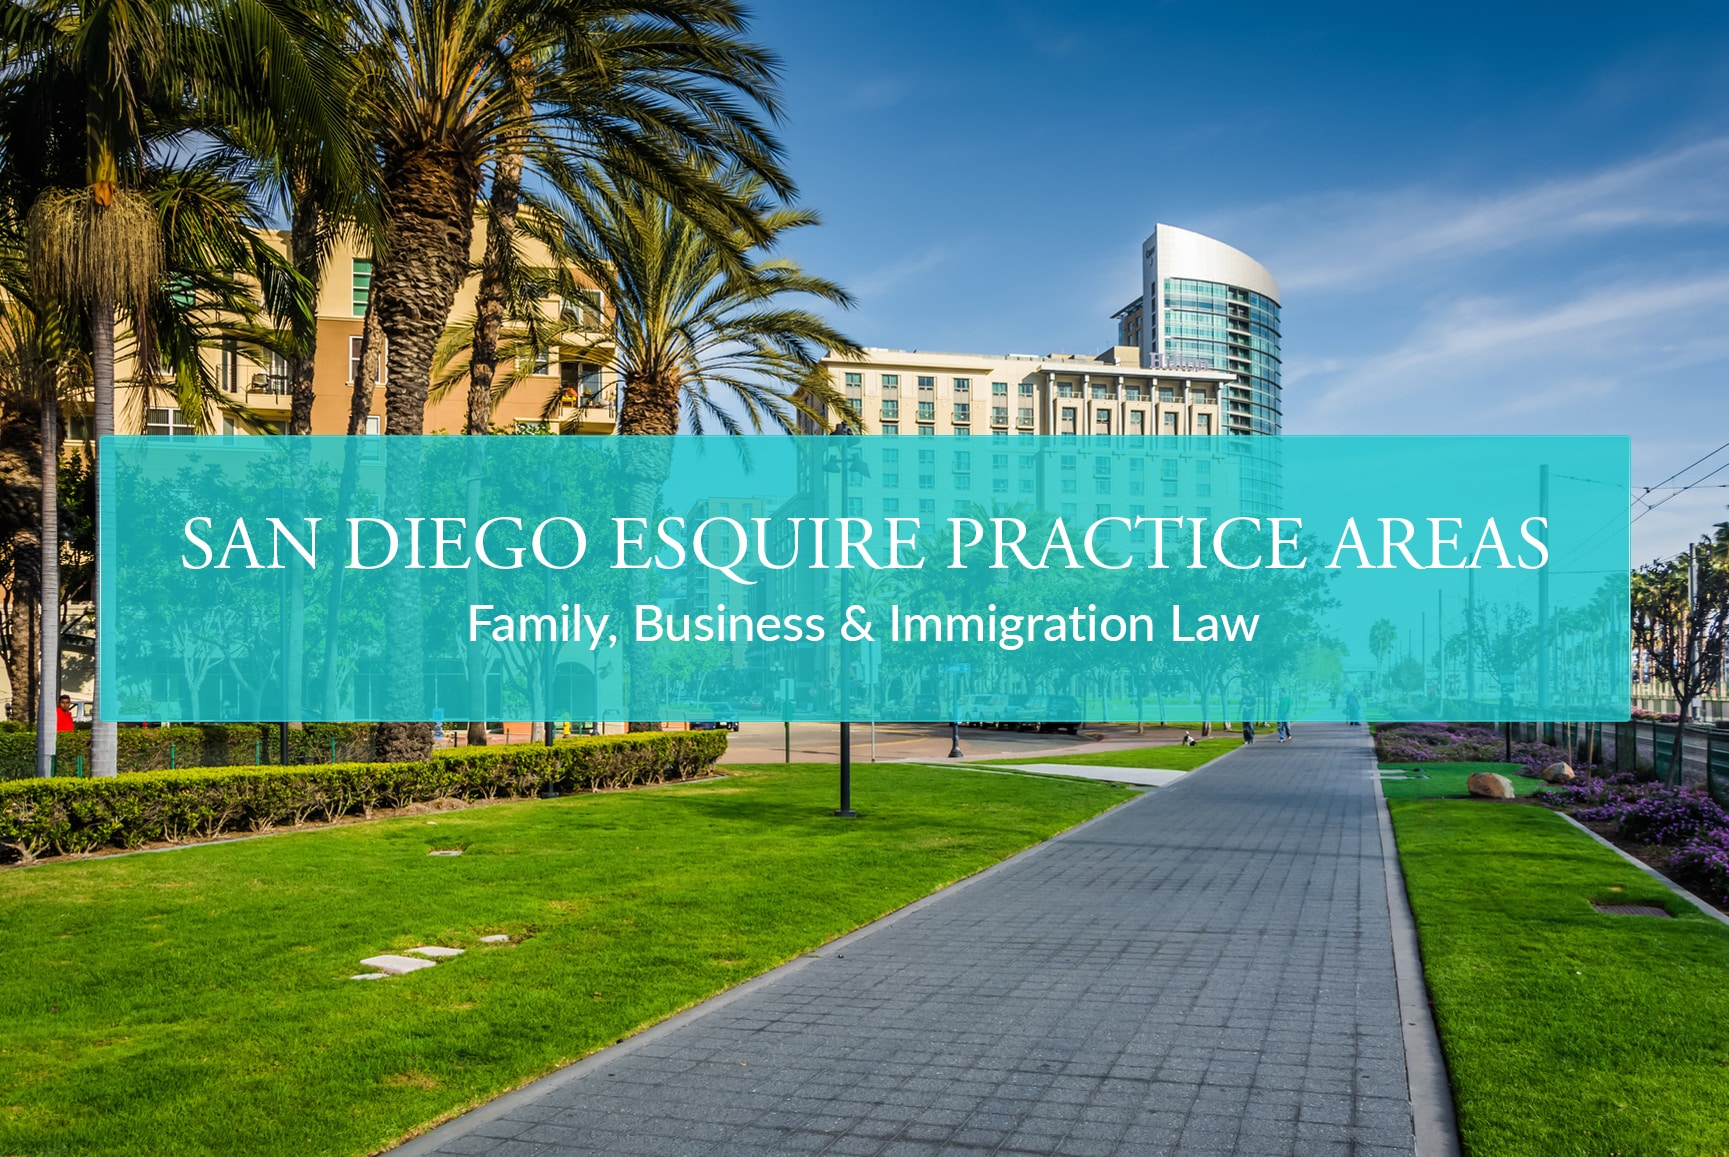 San Diego Esquire Practice Areas Cover Photo